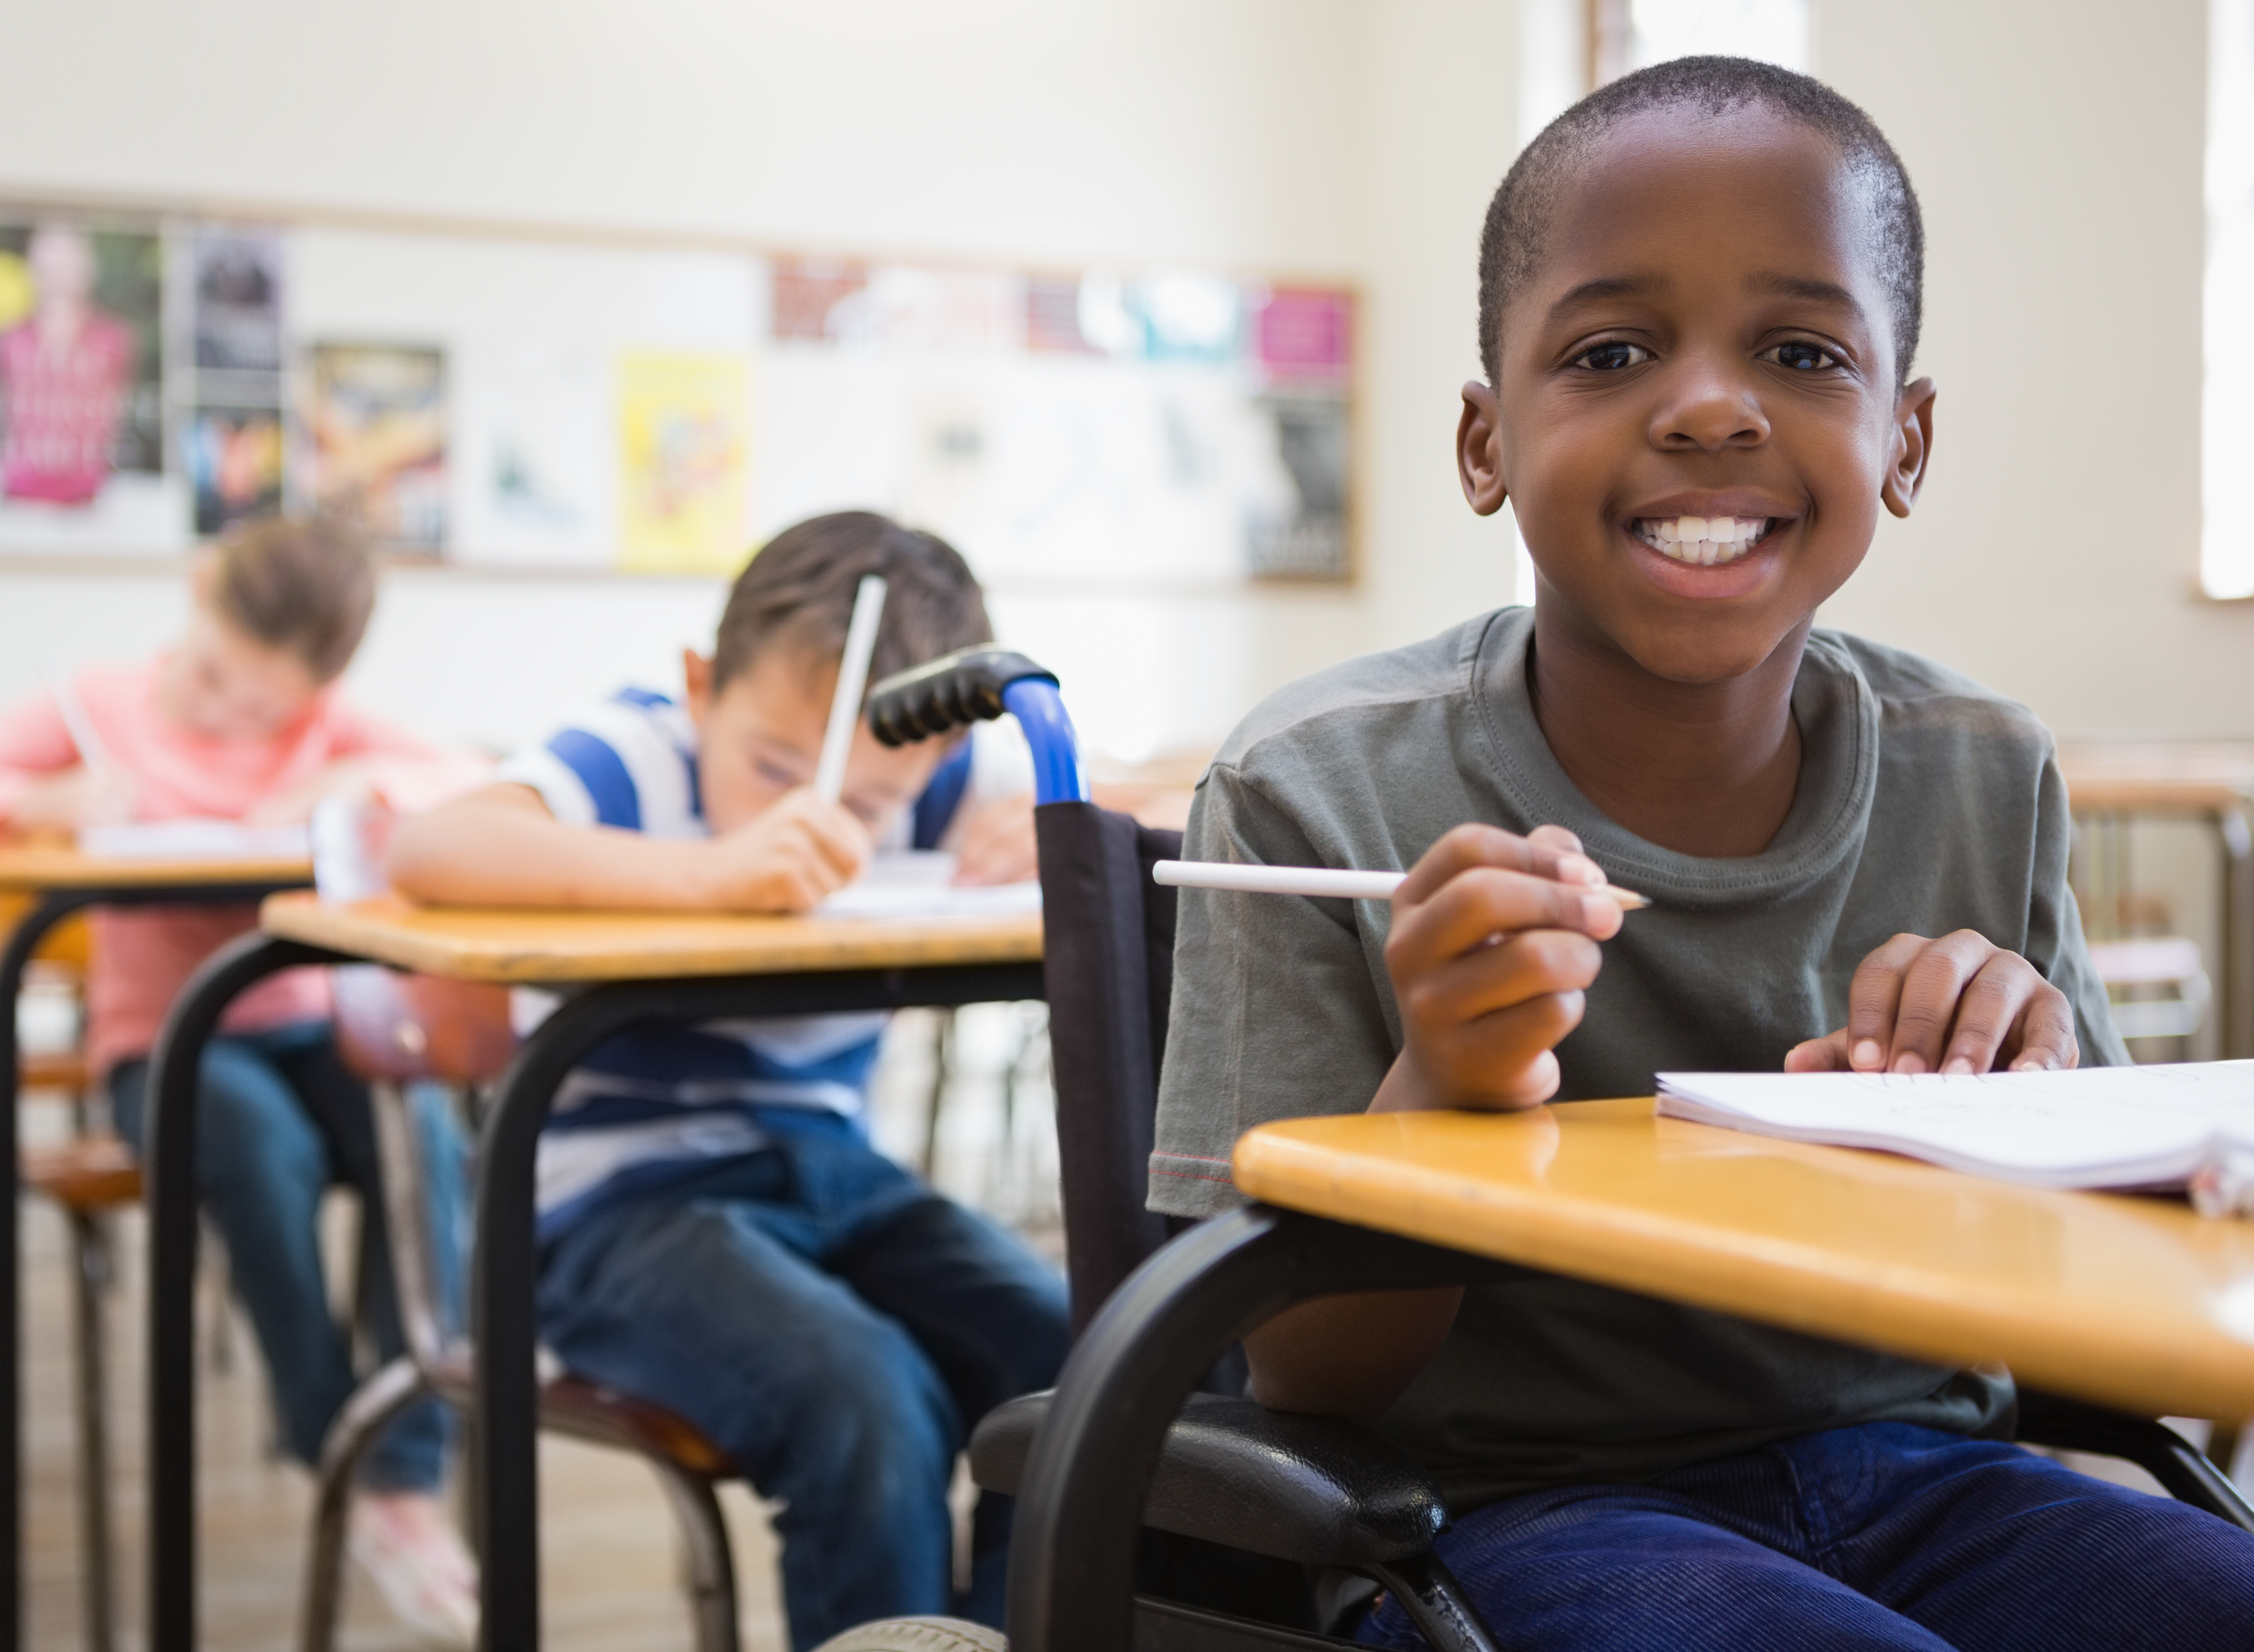 A smiling boy sits in a classroom, writing in a notebook. He is using a wheelchair.